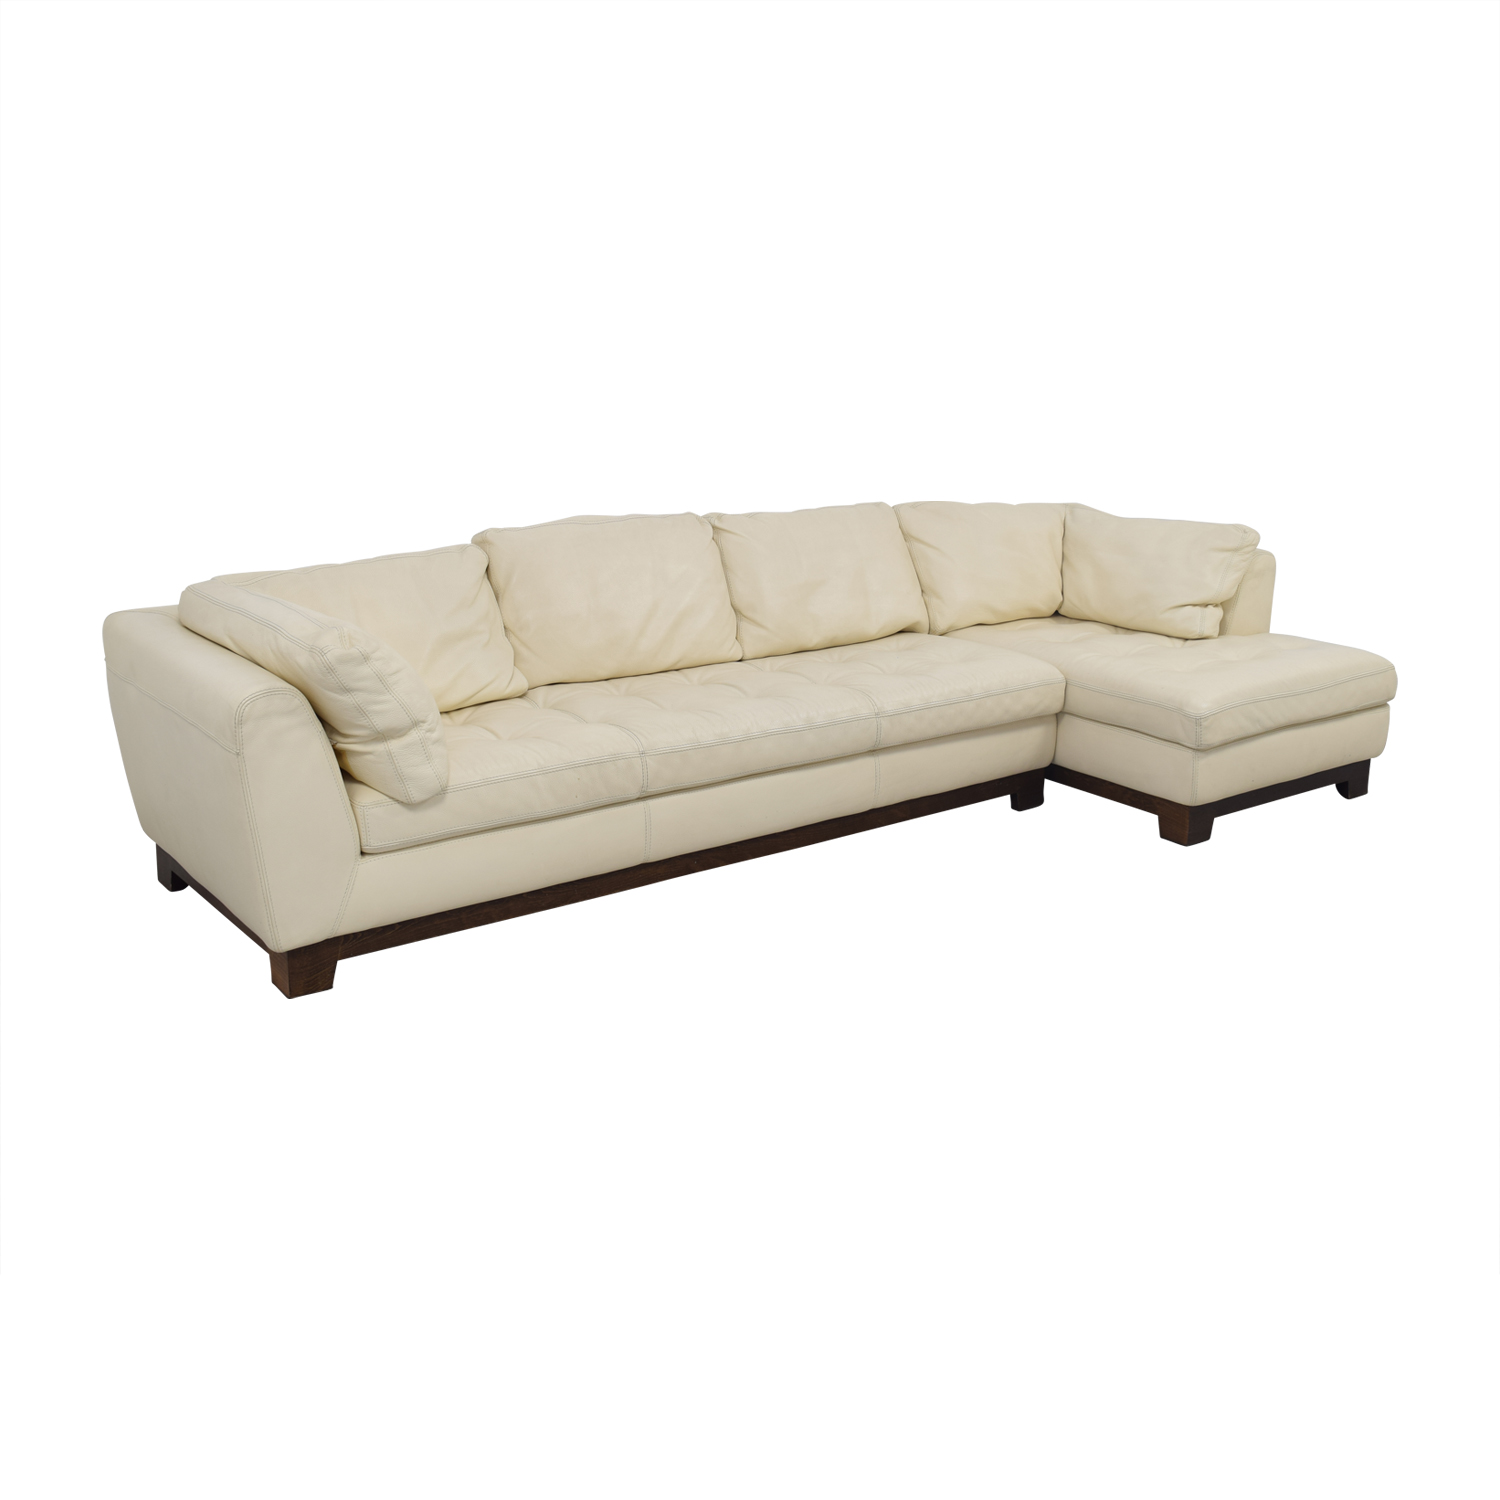 89 off roche bobois roche bobois cream leather chaise sectional sofas. Black Bedroom Furniture Sets. Home Design Ideas